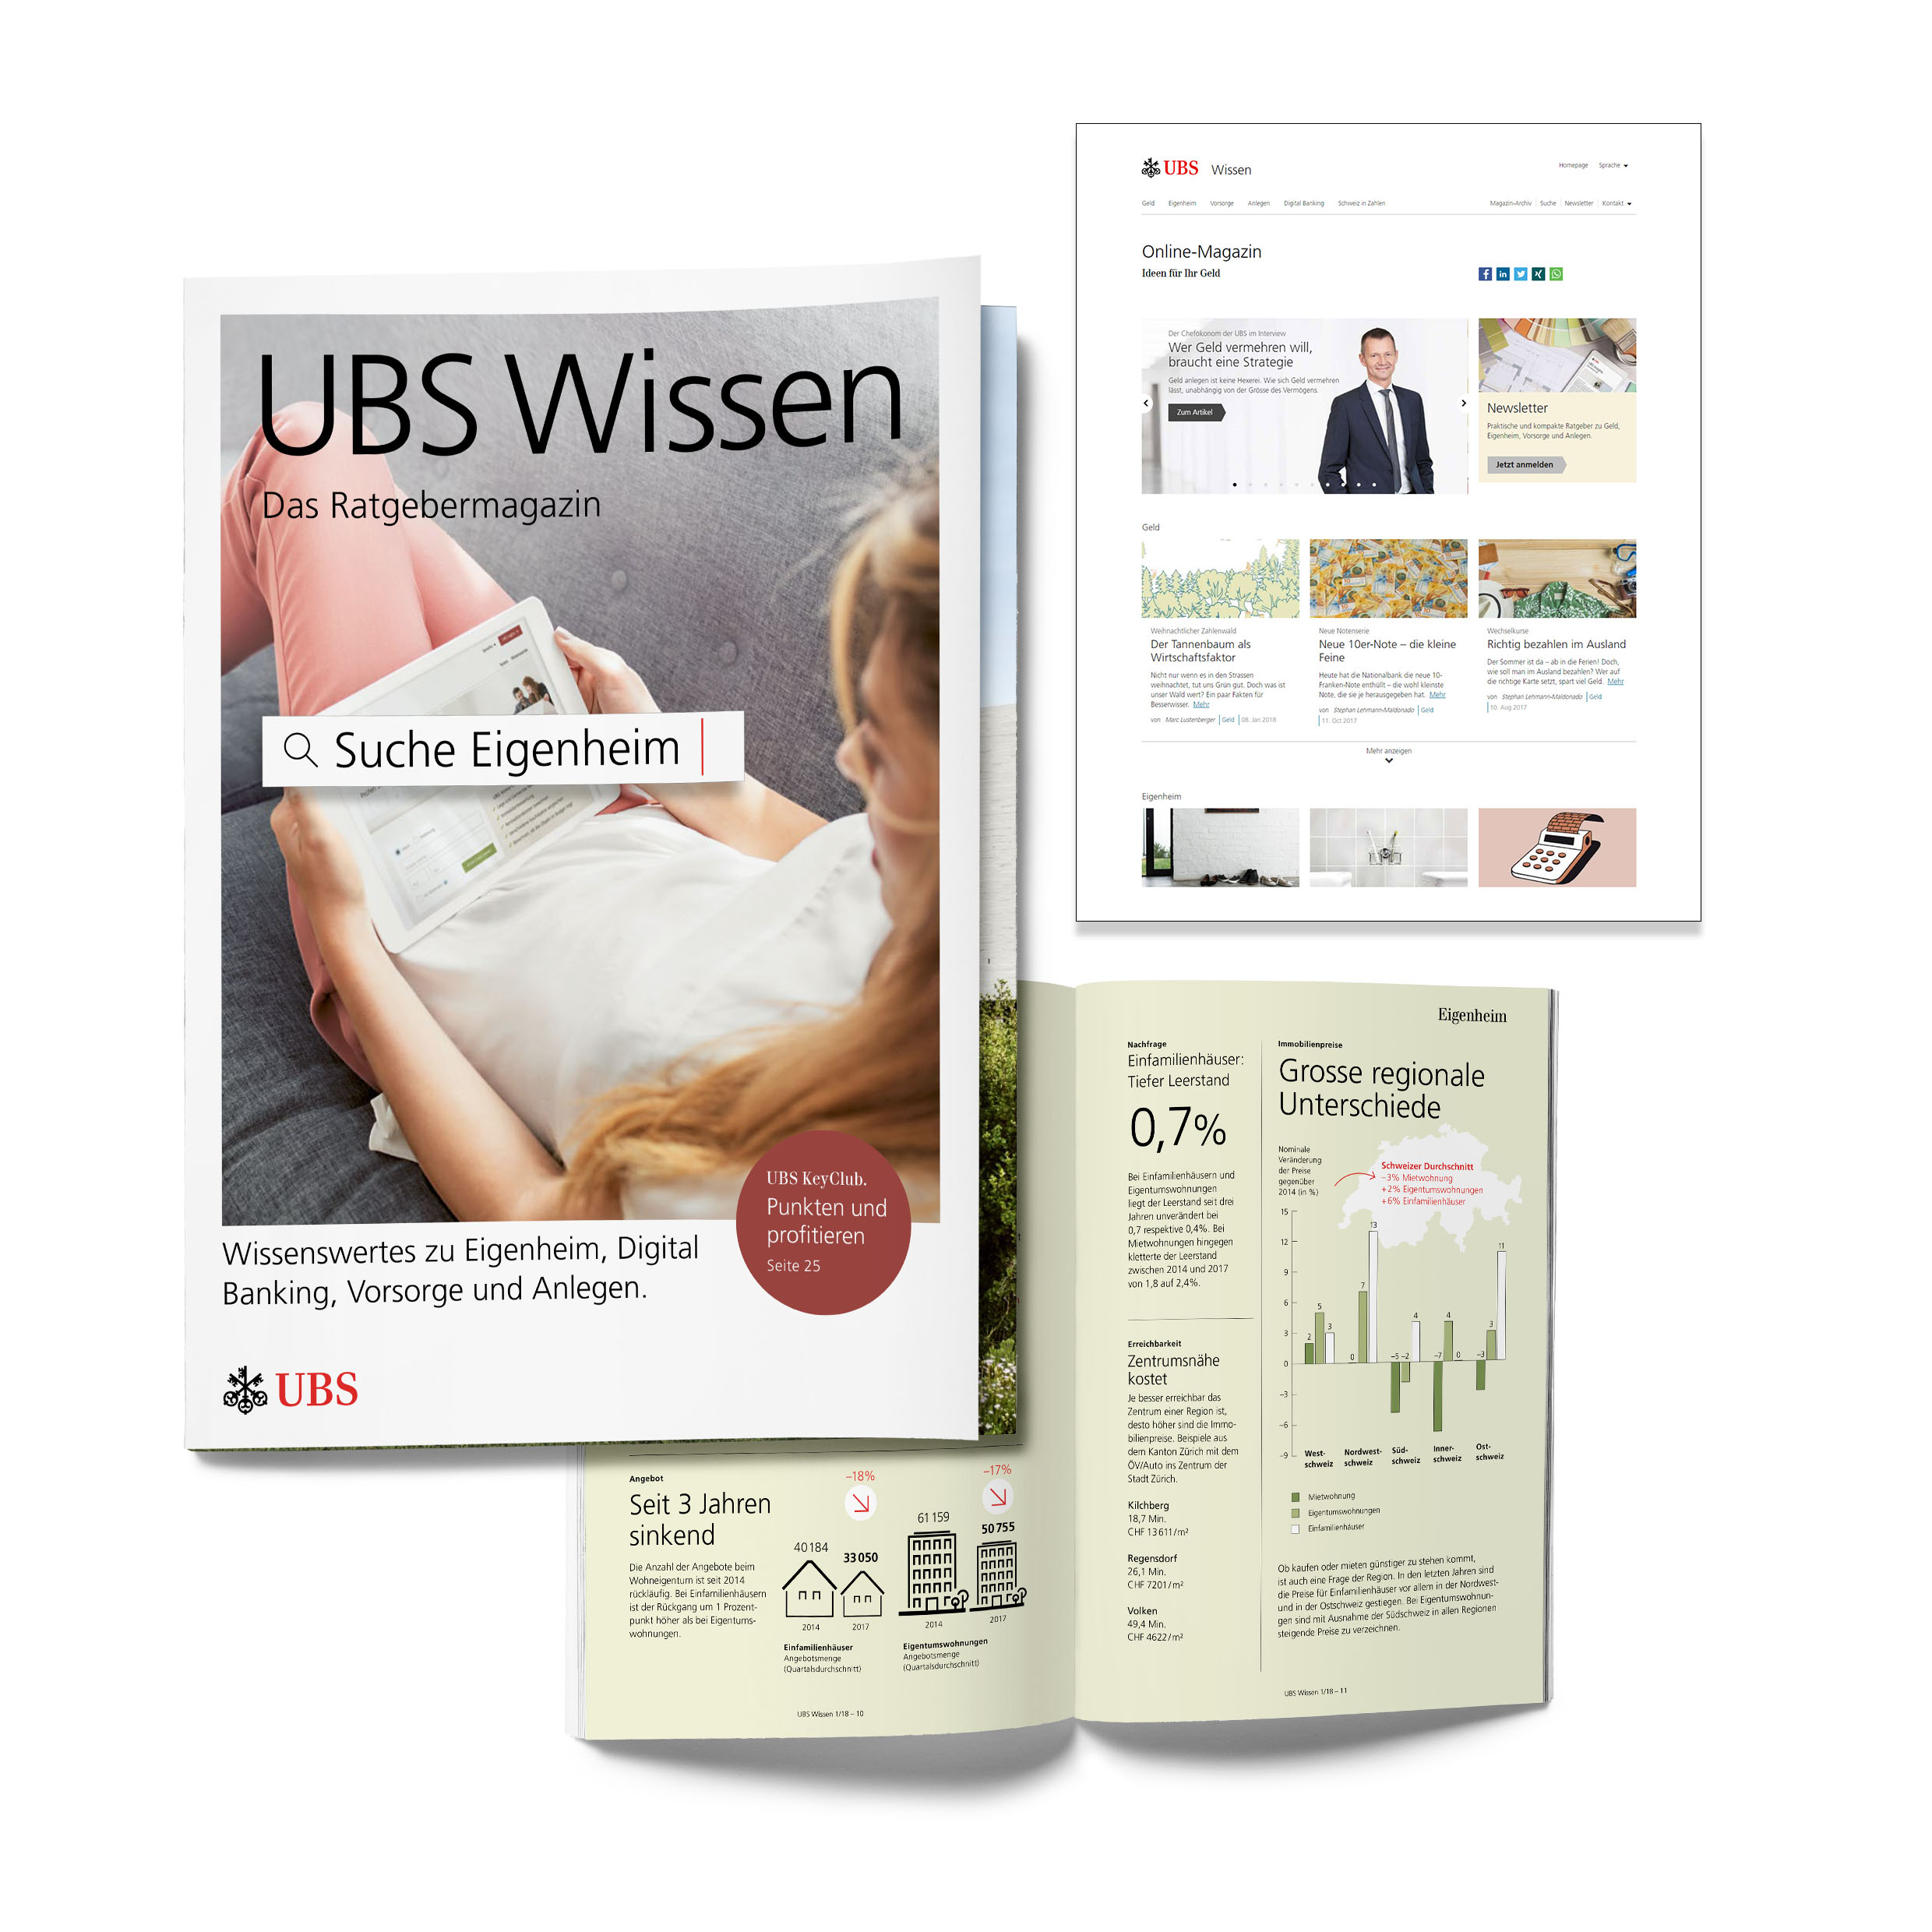 UBS_Medienmitteilung_1_A5